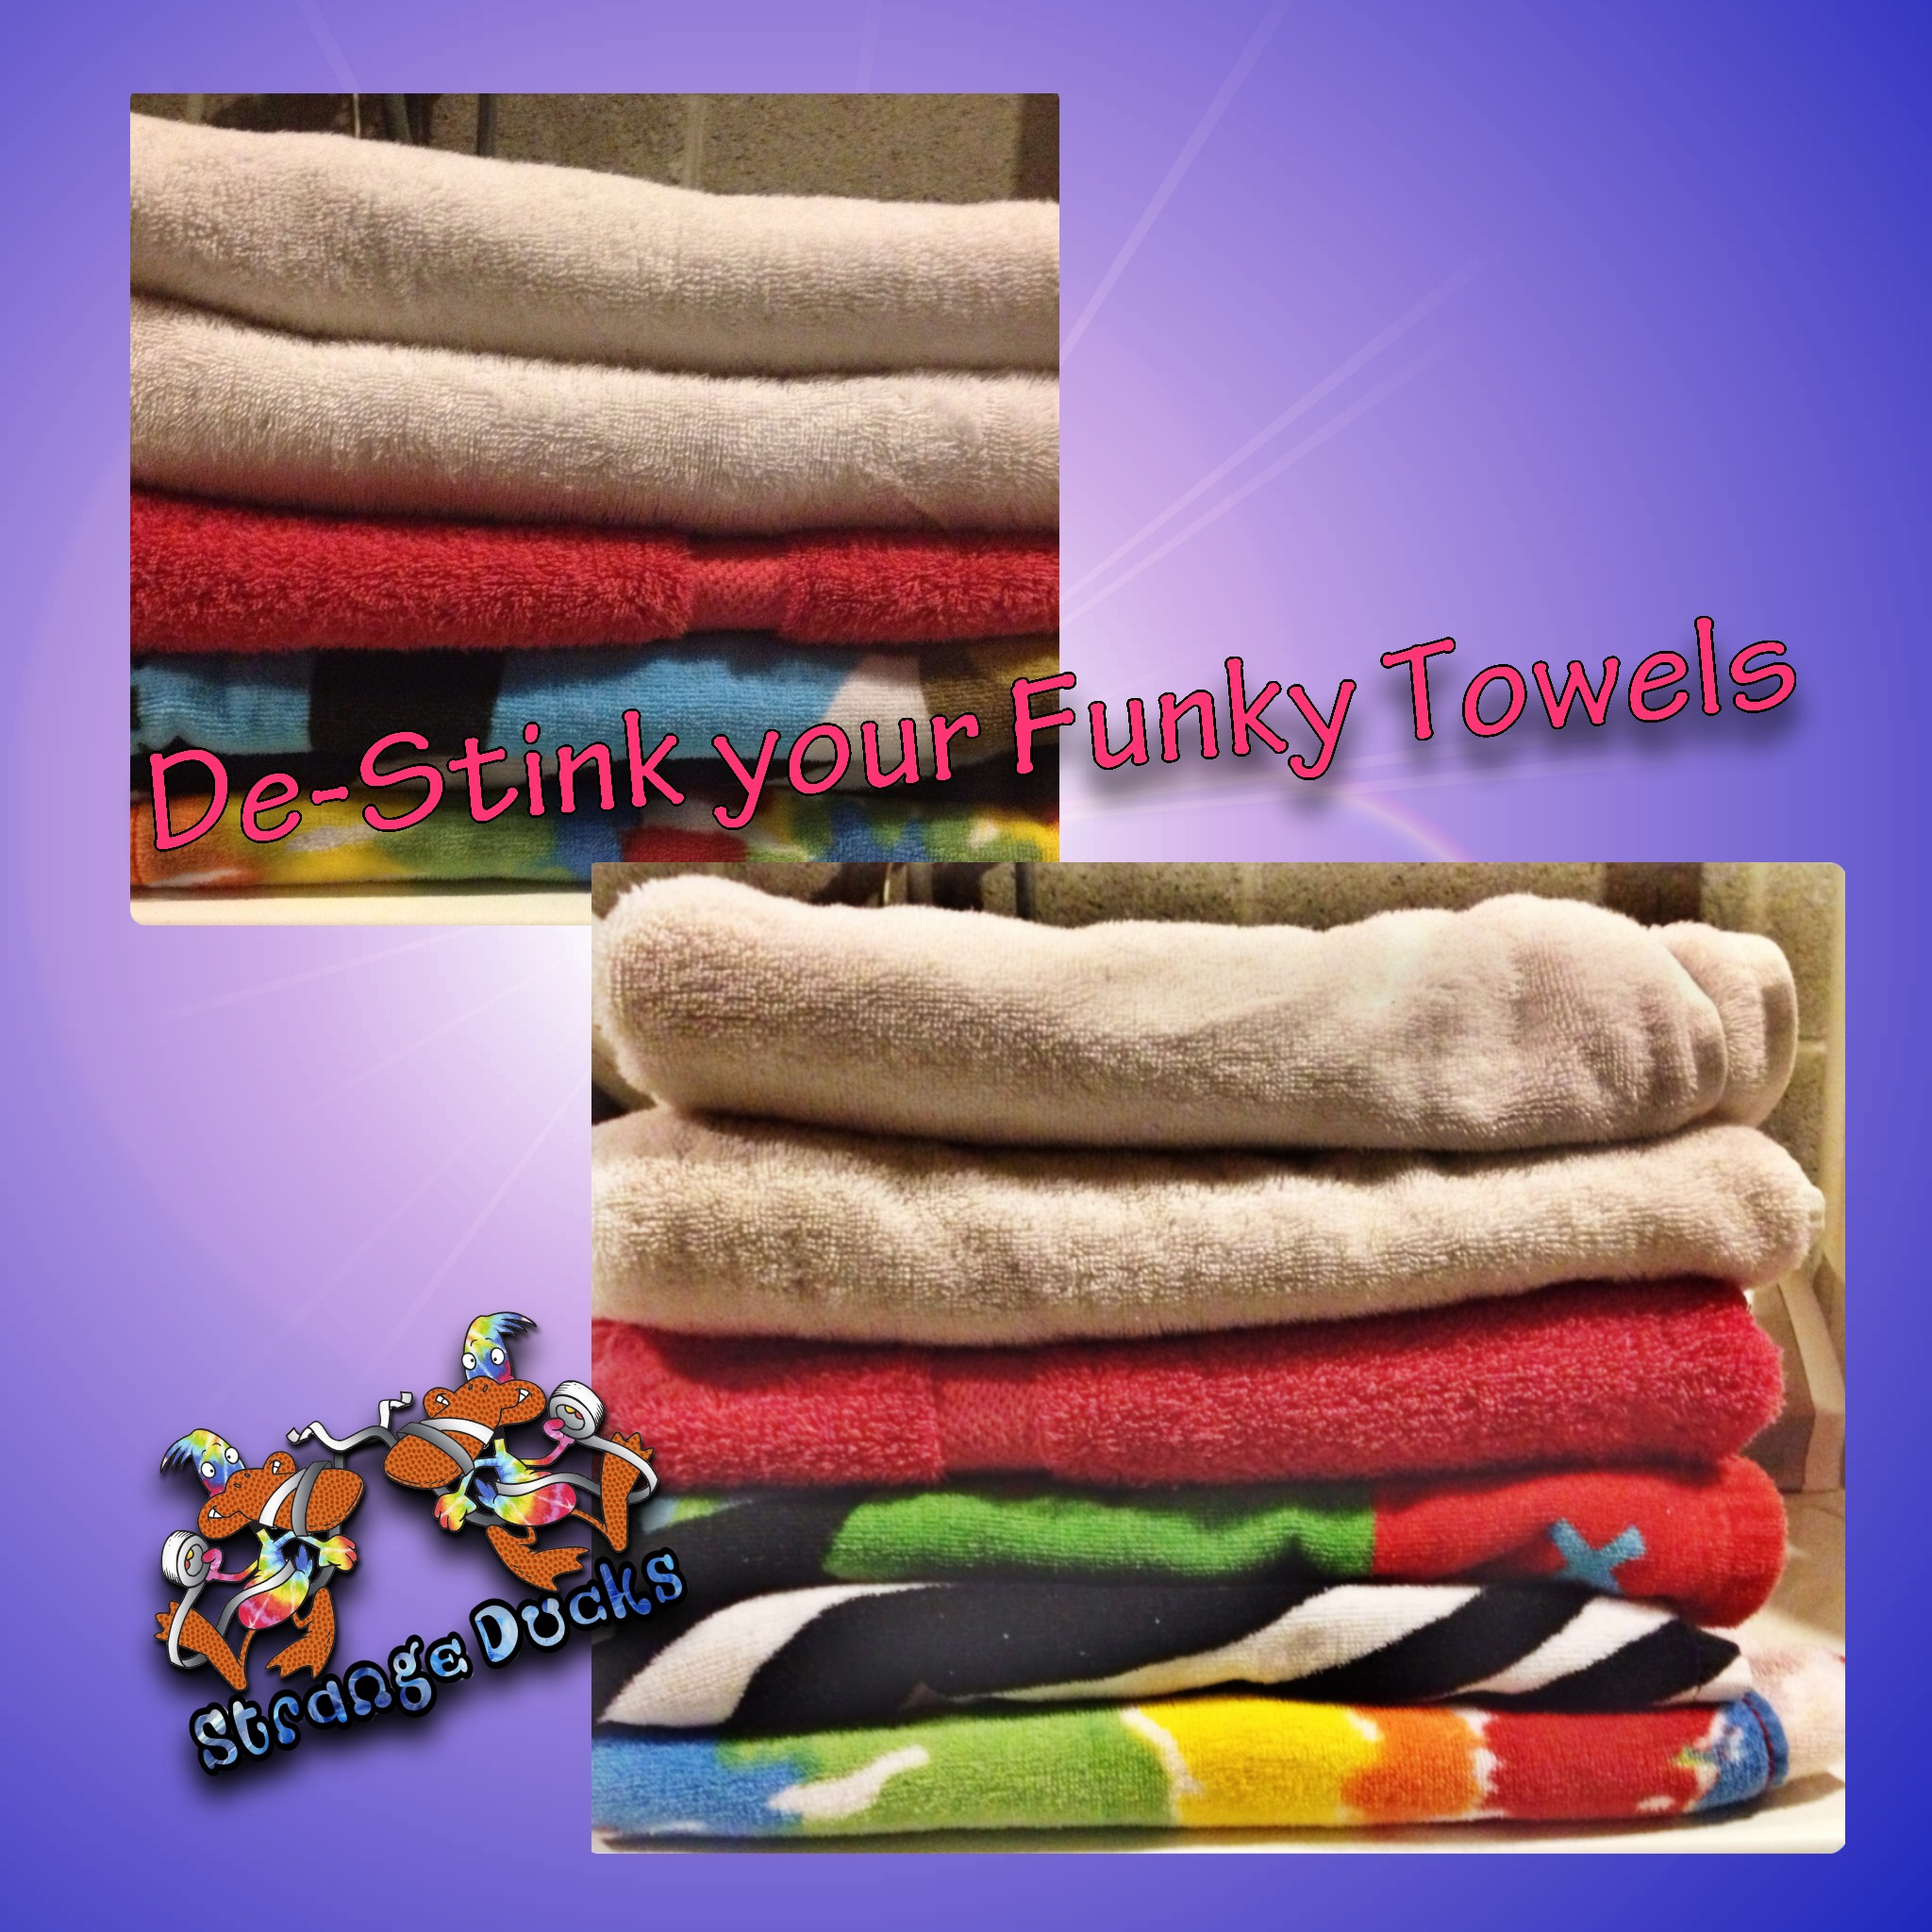 Picture of De-stink Funky Towels